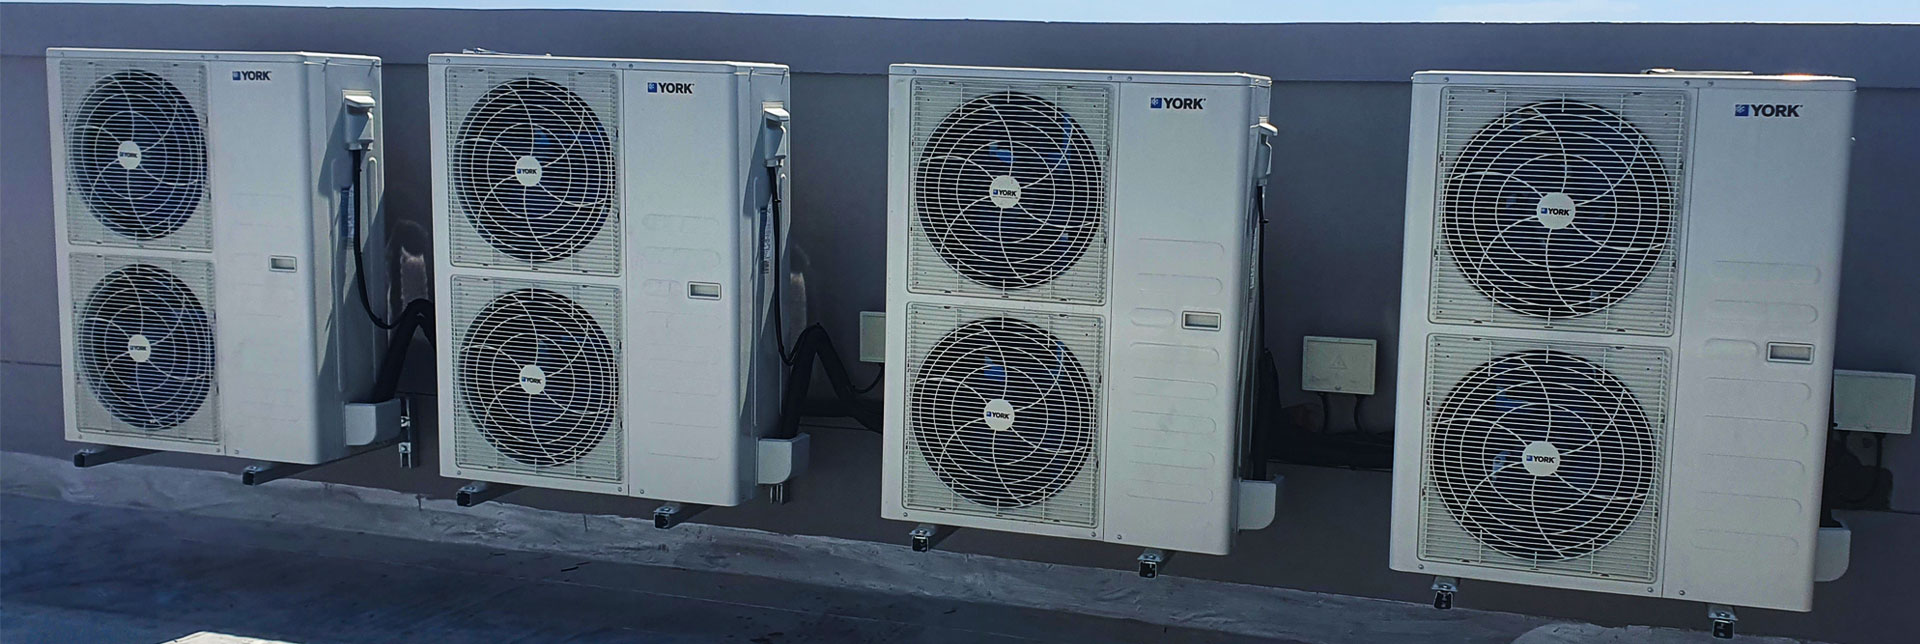 Banner image of Air Conditioner